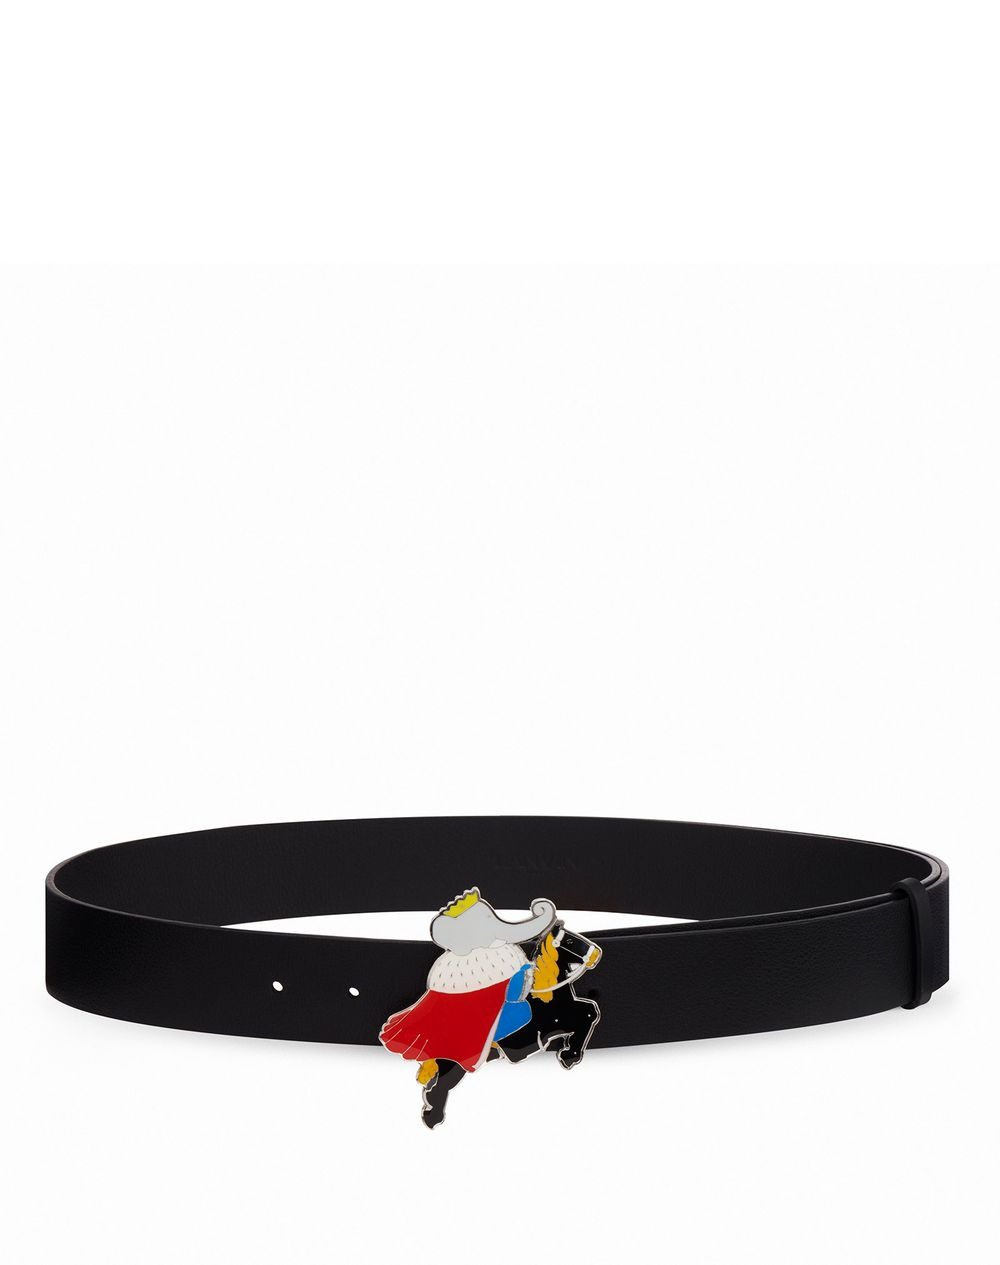 LEATHER BABAR BELT - Lanvin